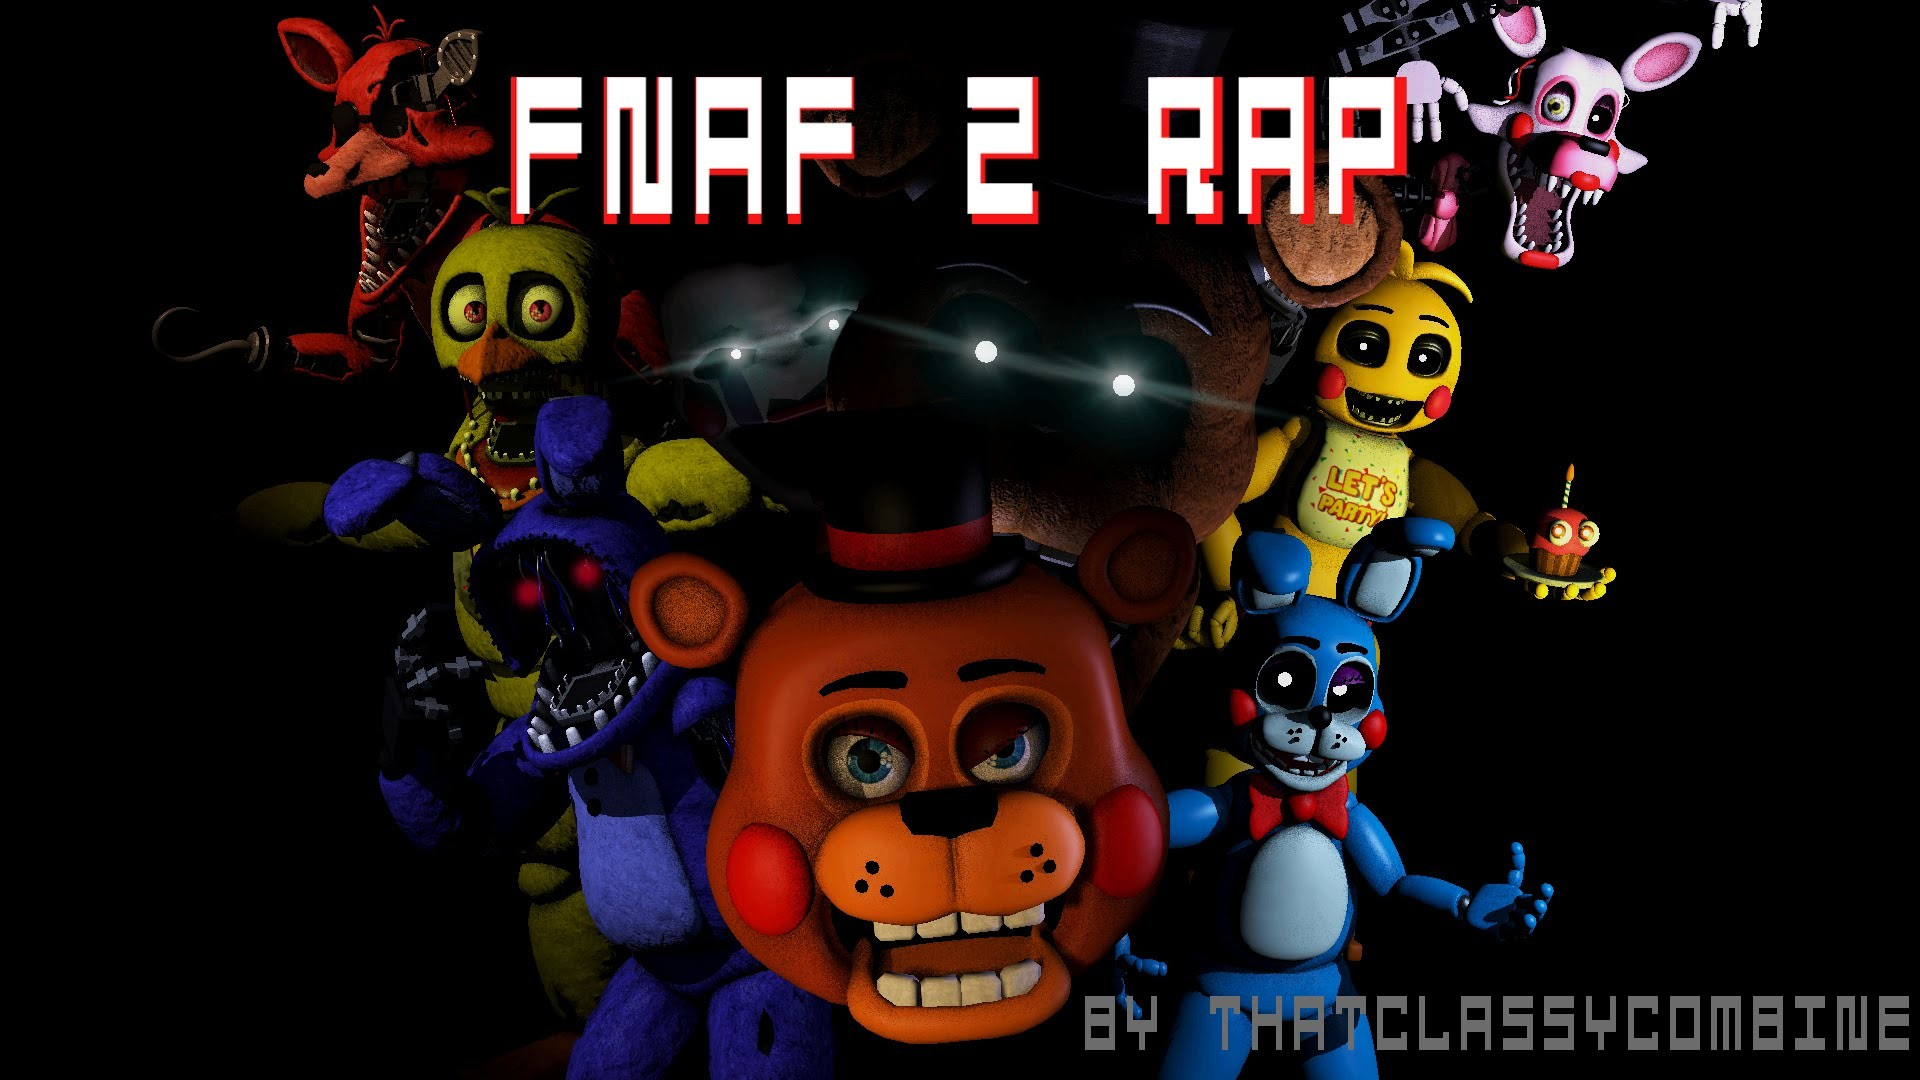 1920x1080 [SFM] FNAF 2 Rap Animated - Five More Nights - YouTube